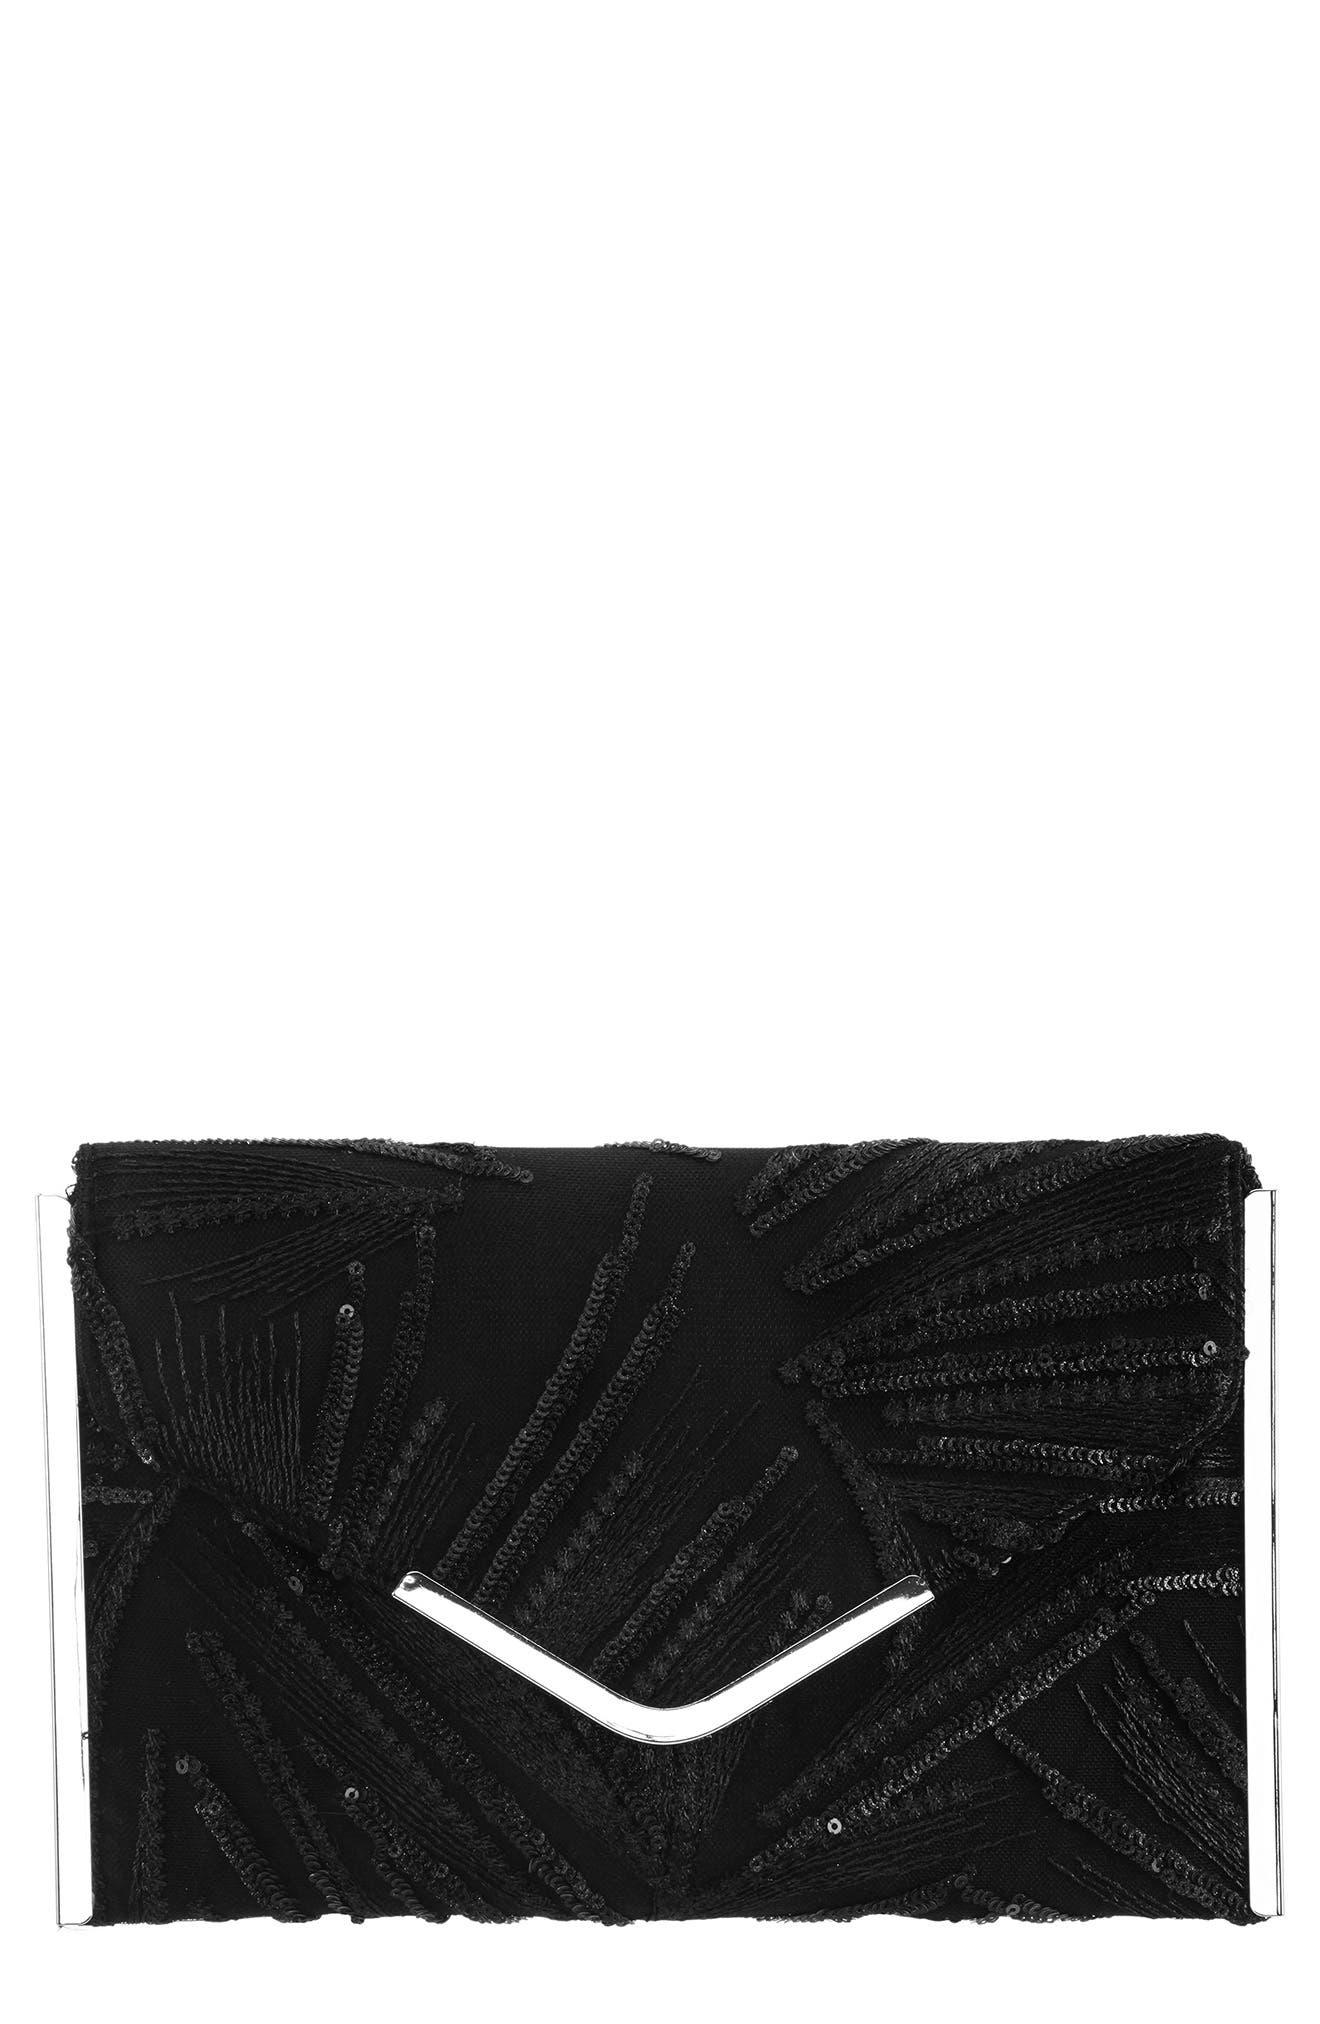 Embroidery Envelope Clutch Bag,                             Main thumbnail 1, color,                             012